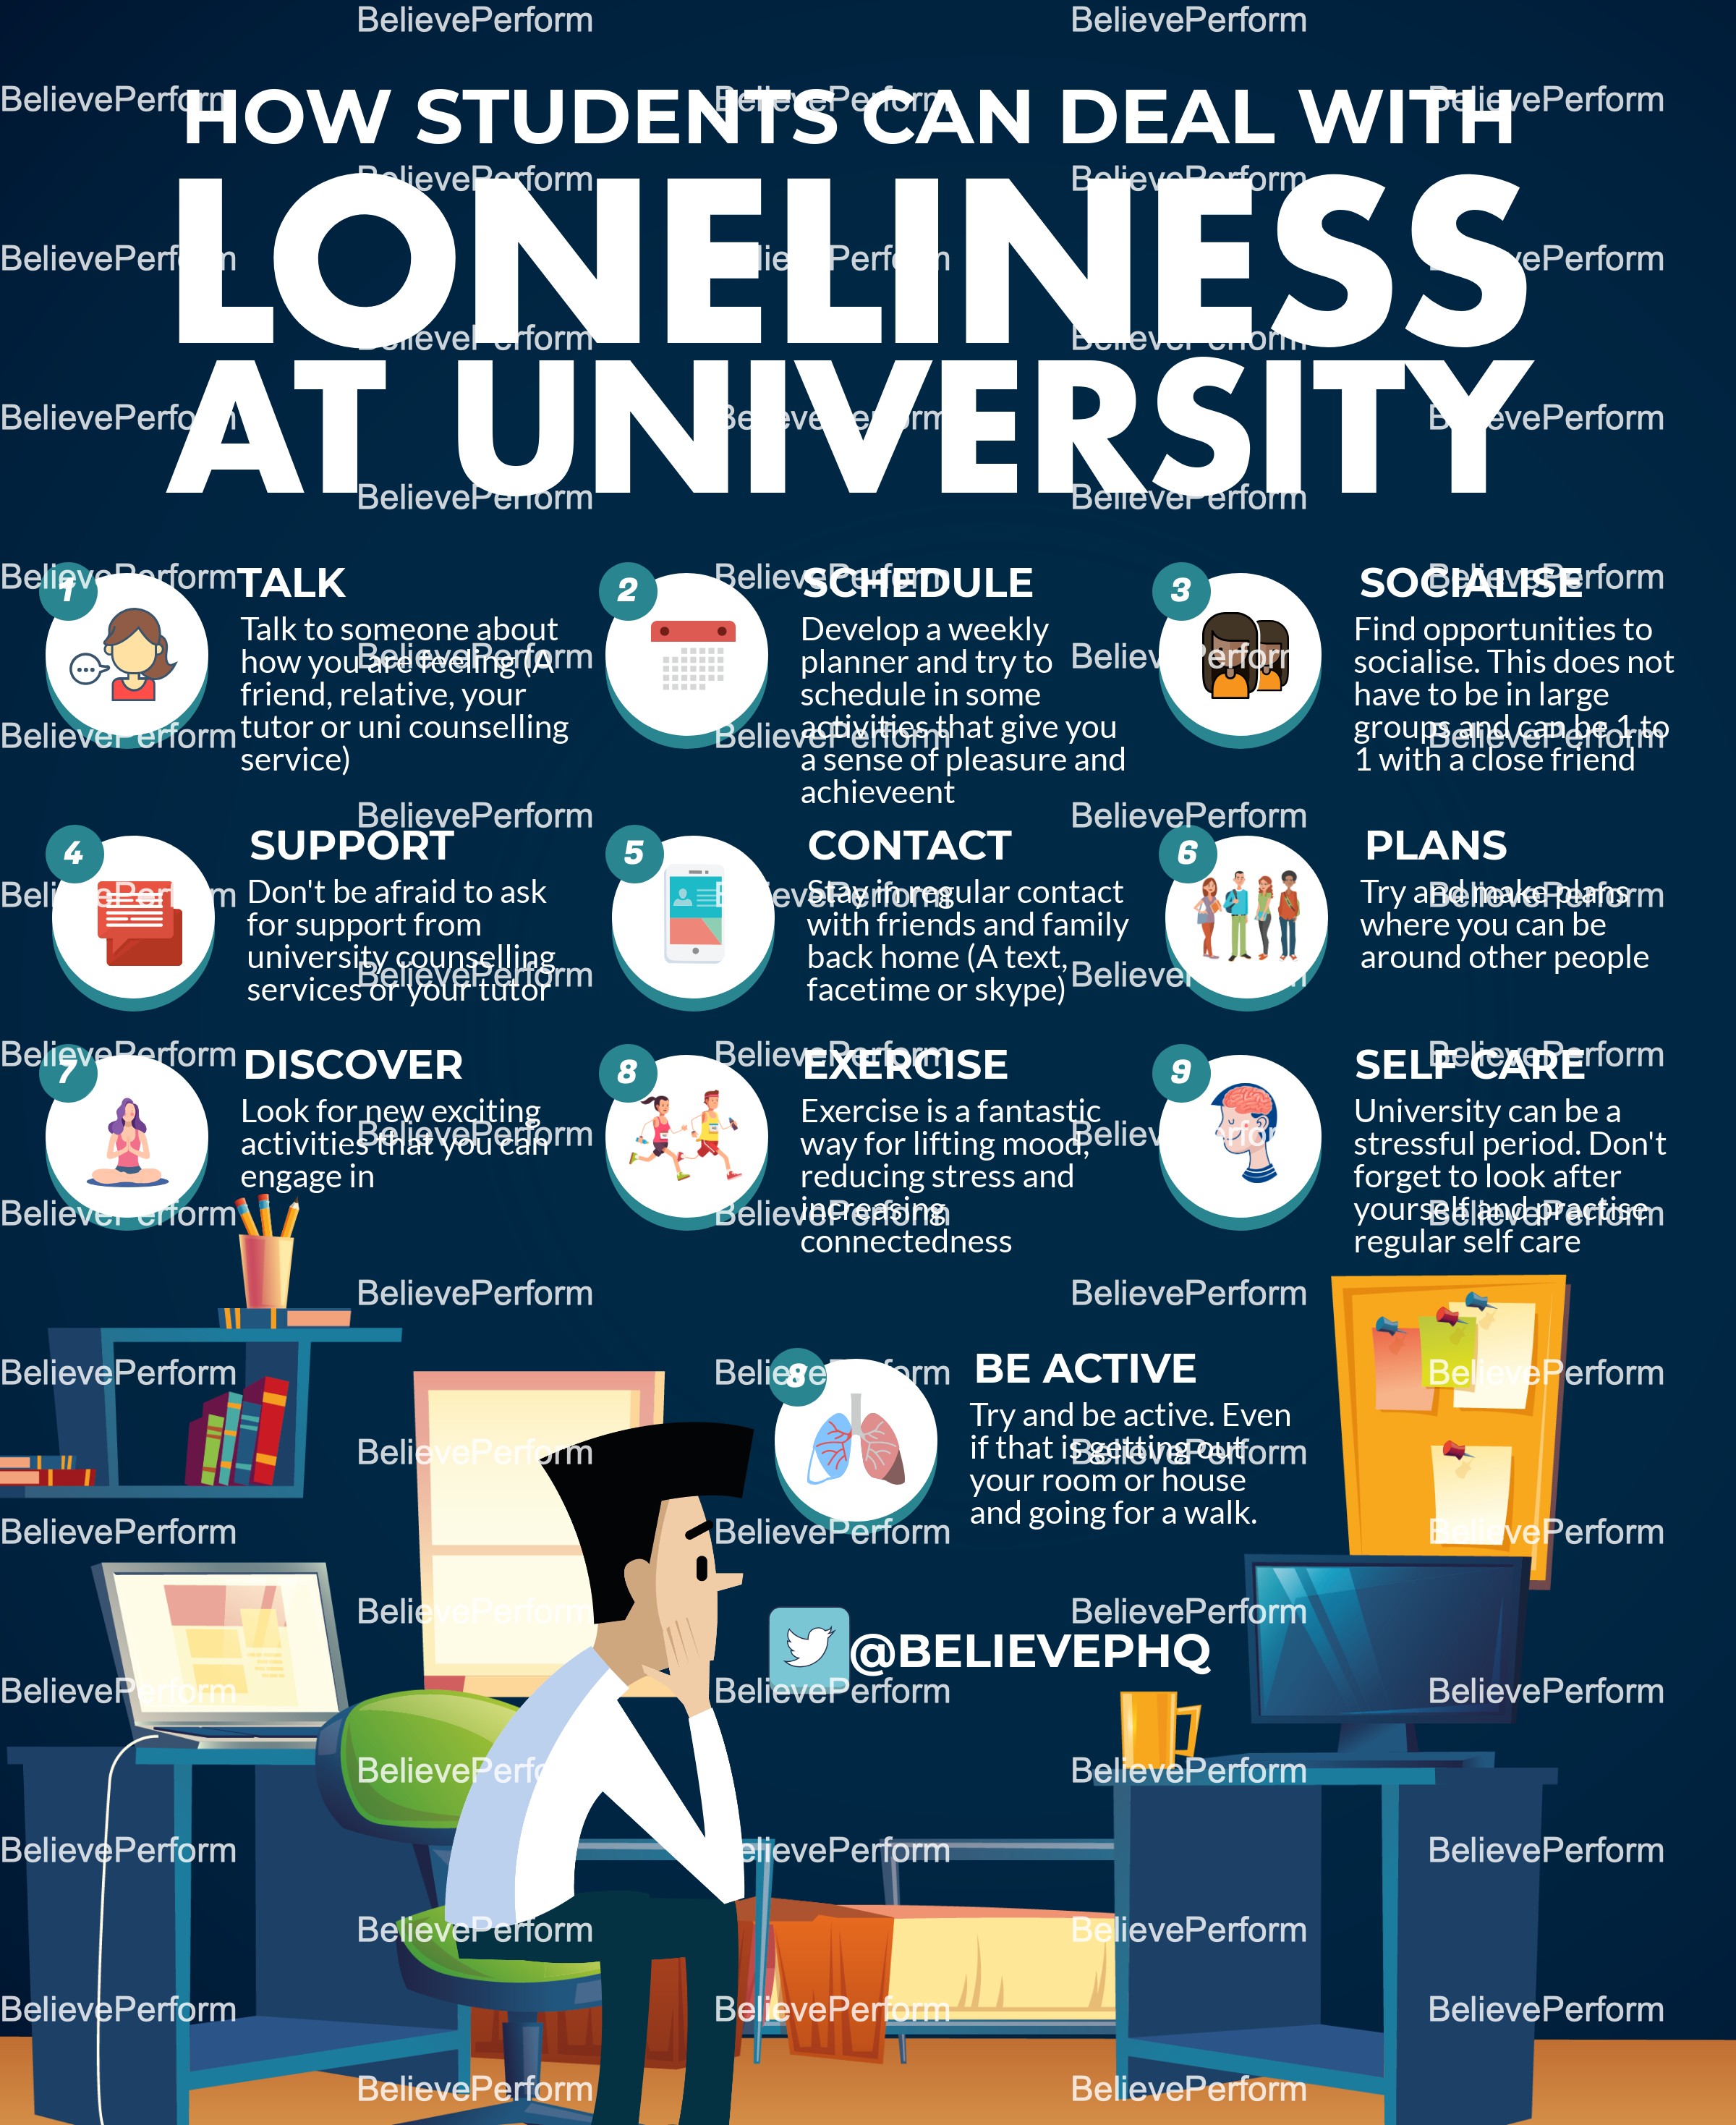 How students can deal with loneliness at university